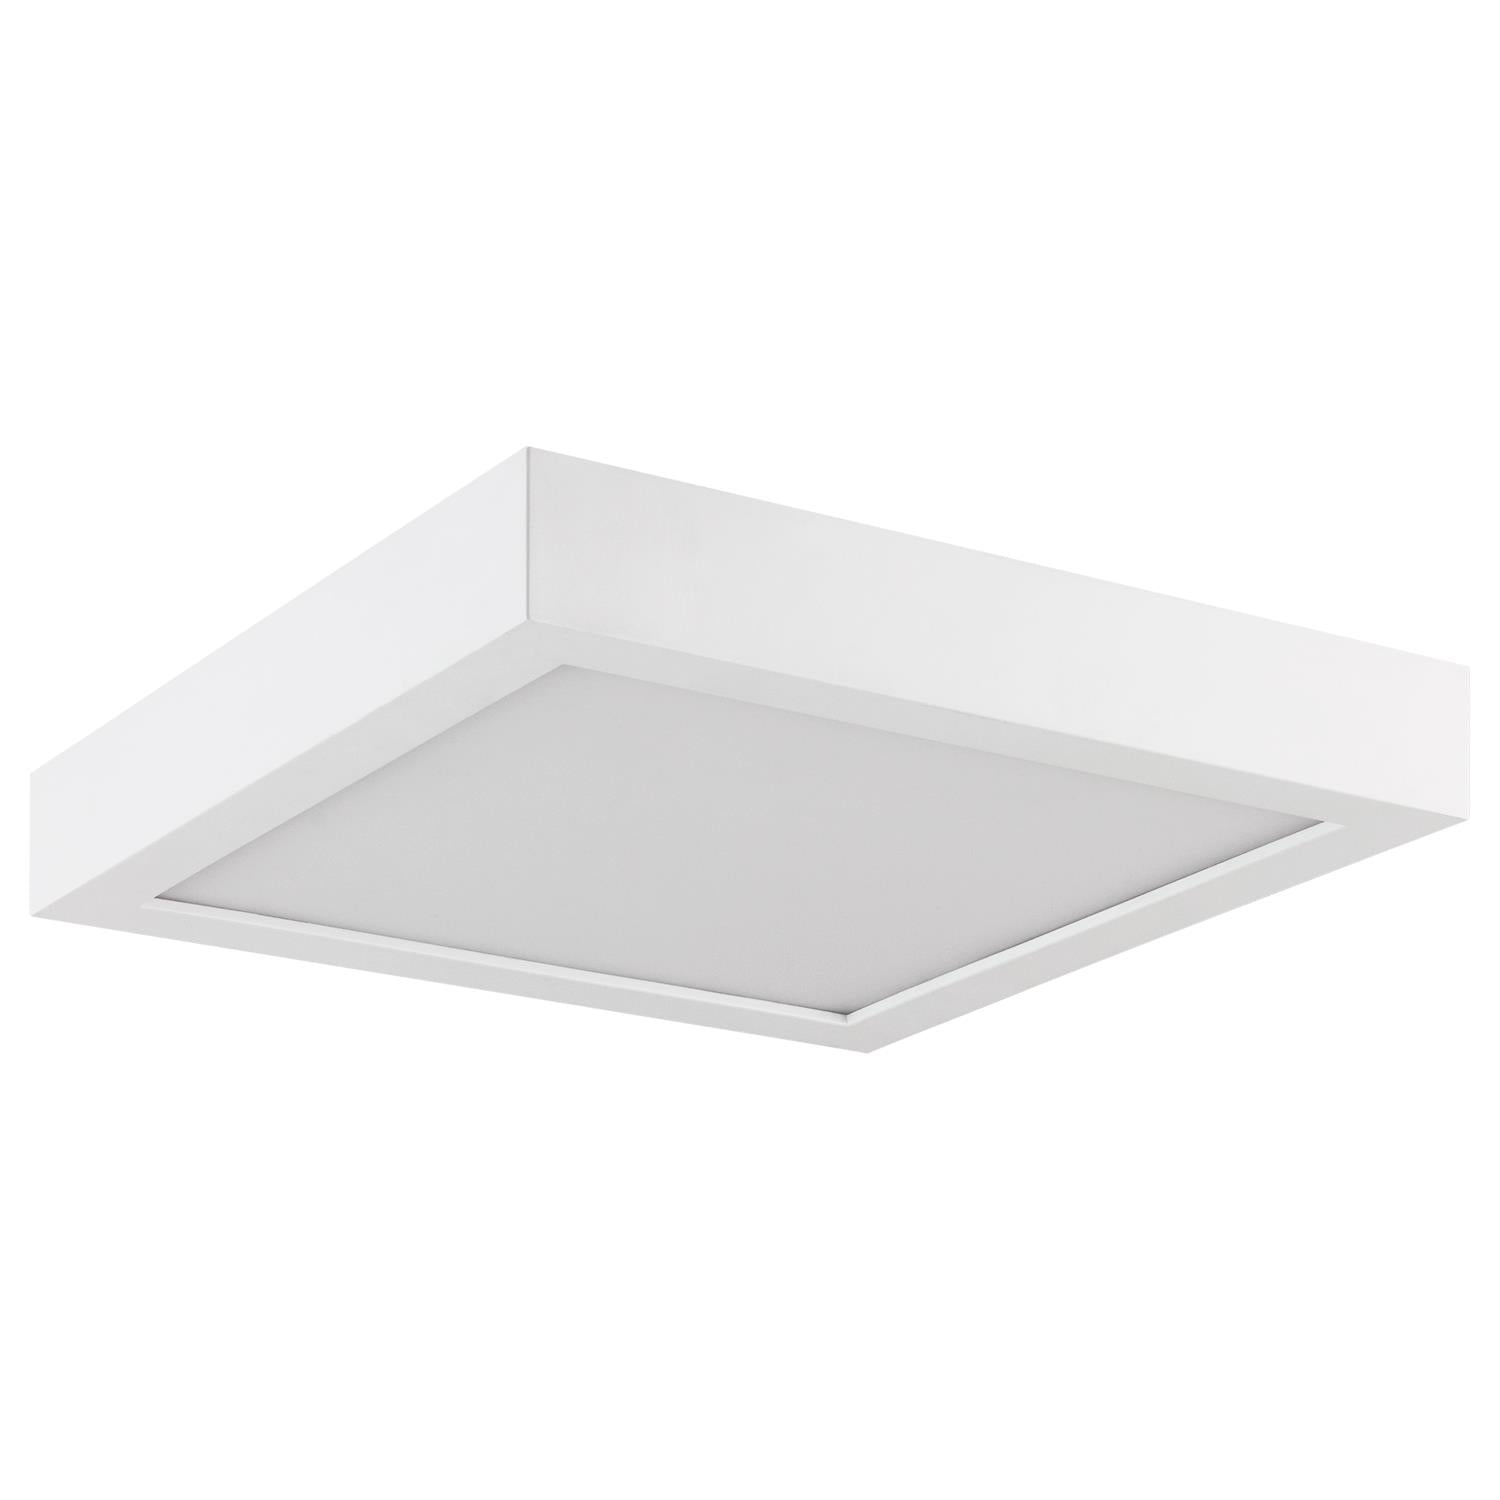 SUNLITE 14W 7in. Square LED Surface Mount Downlight 4000K Cool White